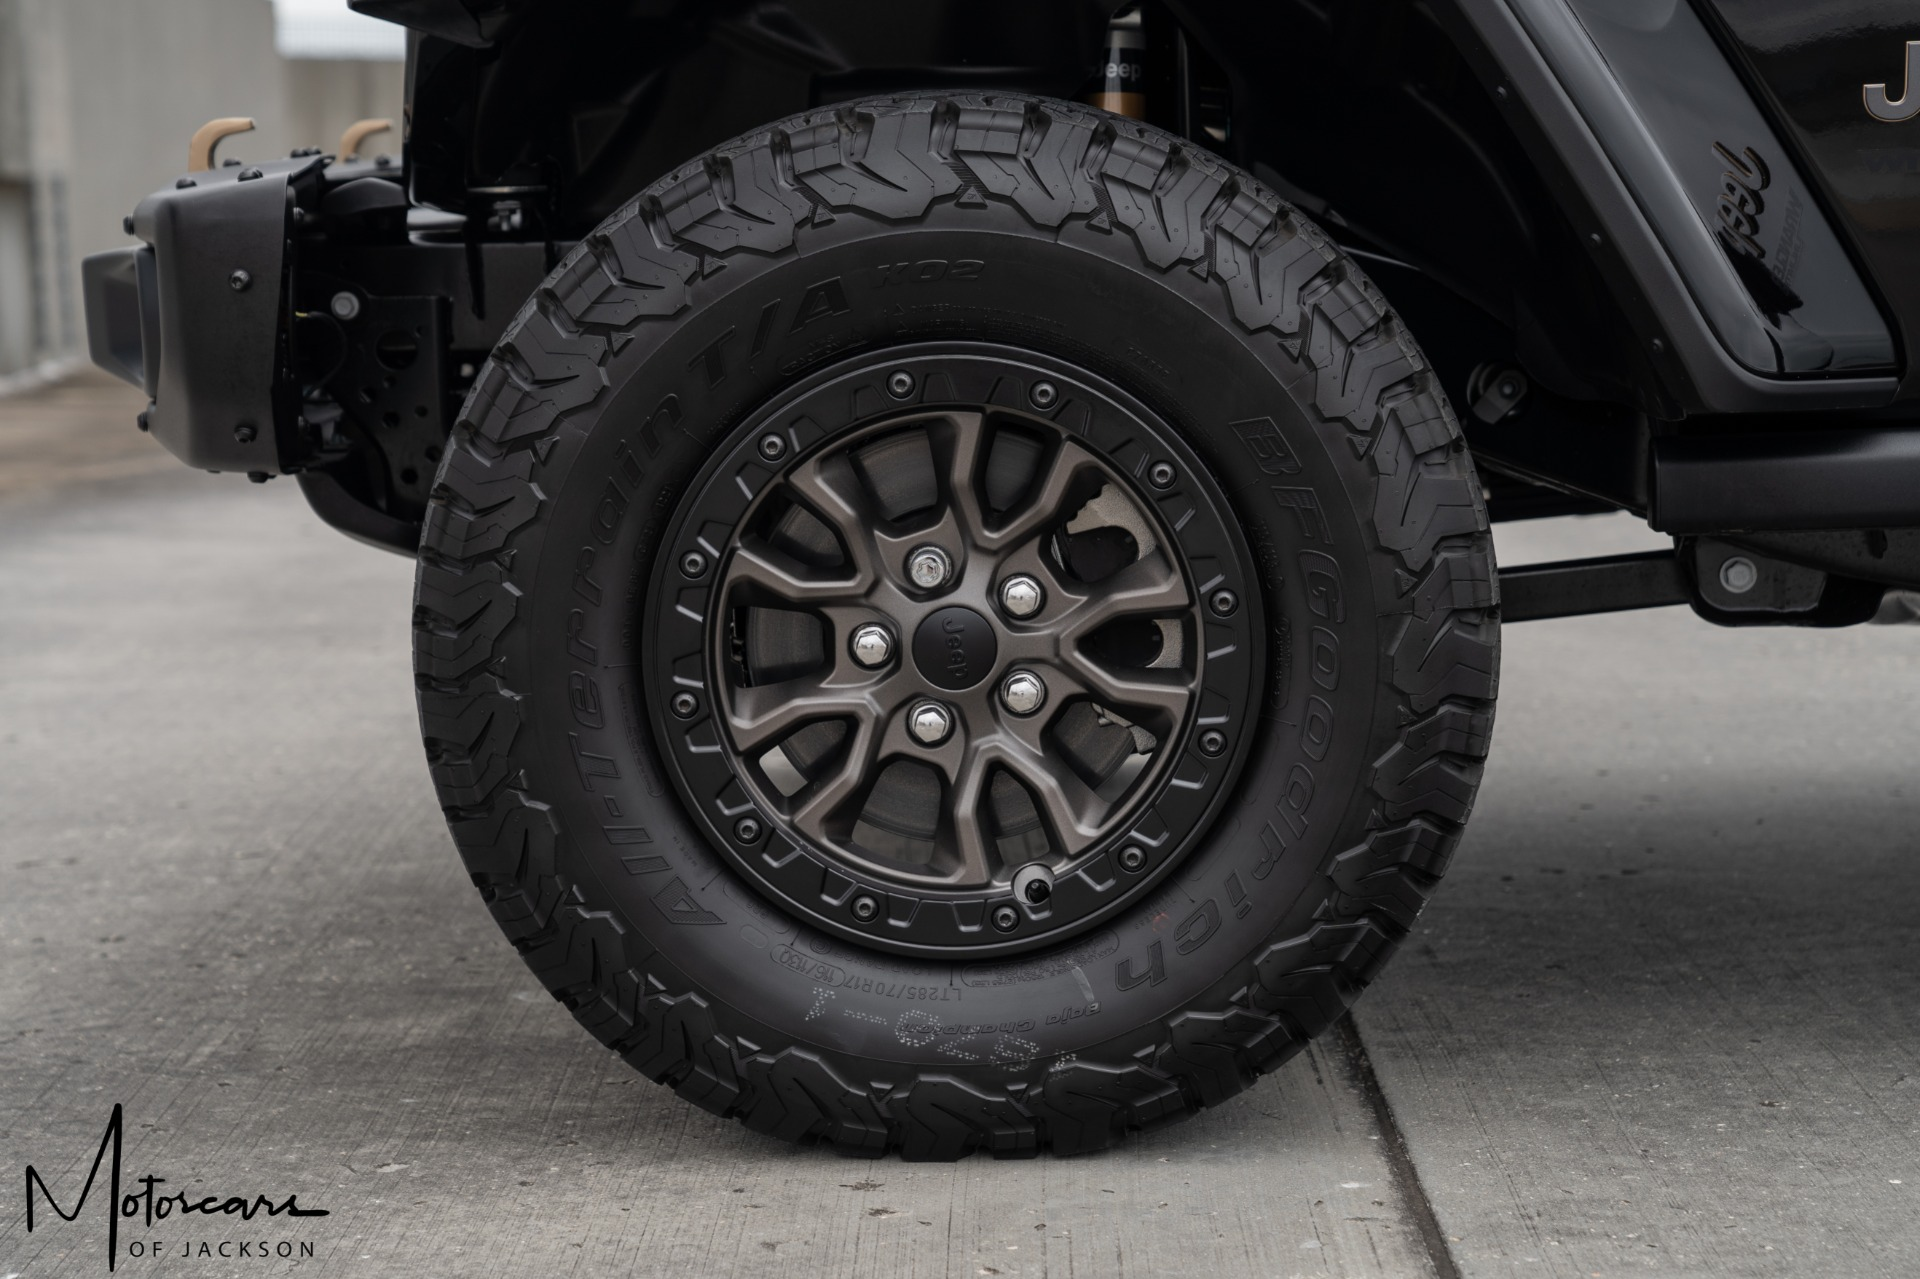 Used-2021-Jeep-Wrangler-Unlimited-Rubicon-392-for-sale-Jackson-MS